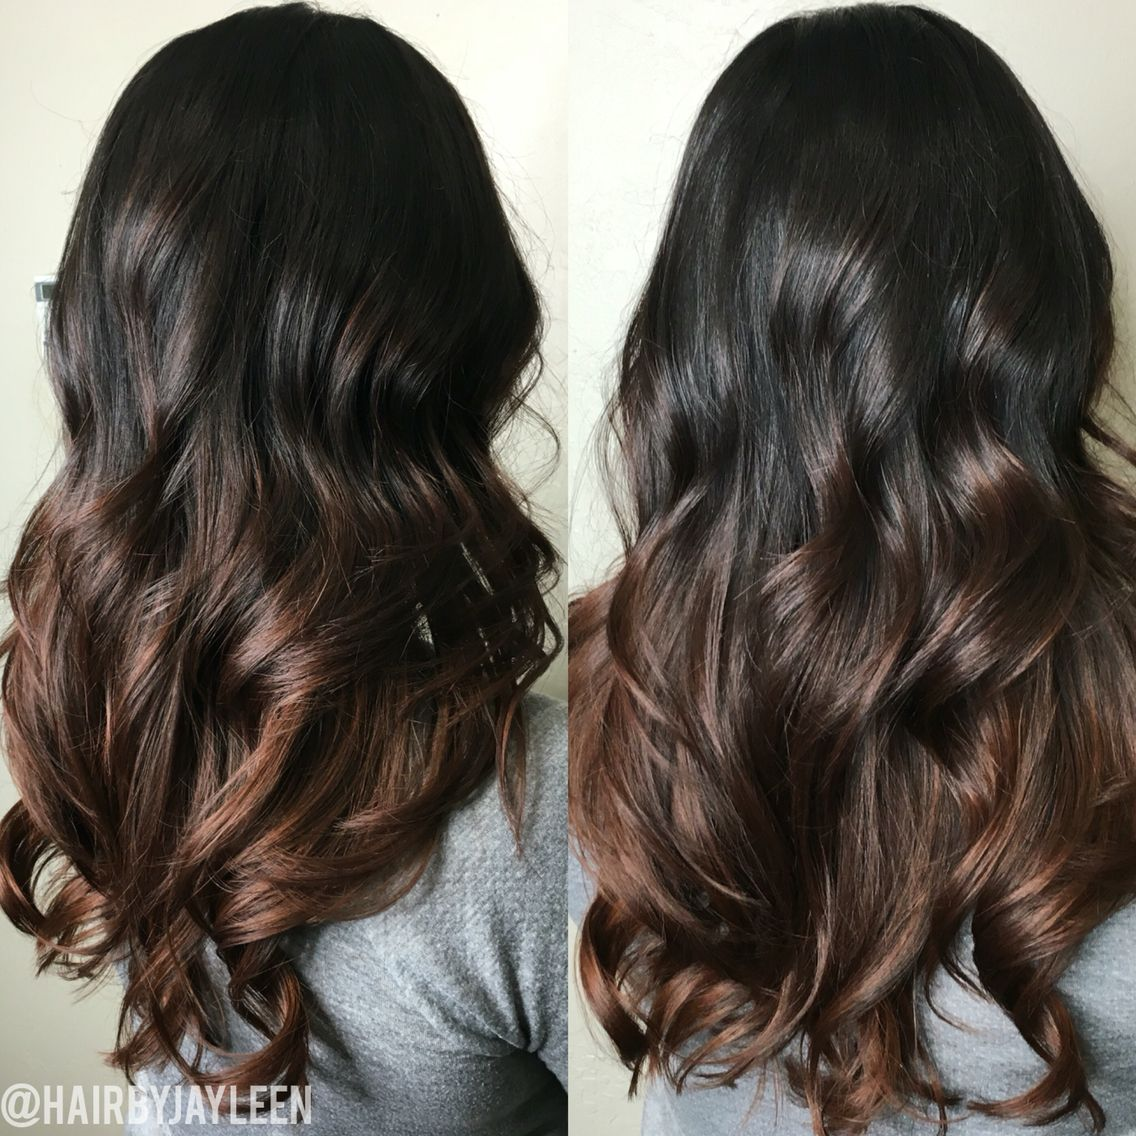 Balayage Dark Hair Chocolate Brown Hair Ombre Brunette Hair Curls Long Hair Dark To Light Hair Hairsty Balayage Hair Dark Balayage Hair Mocha Brown Hair